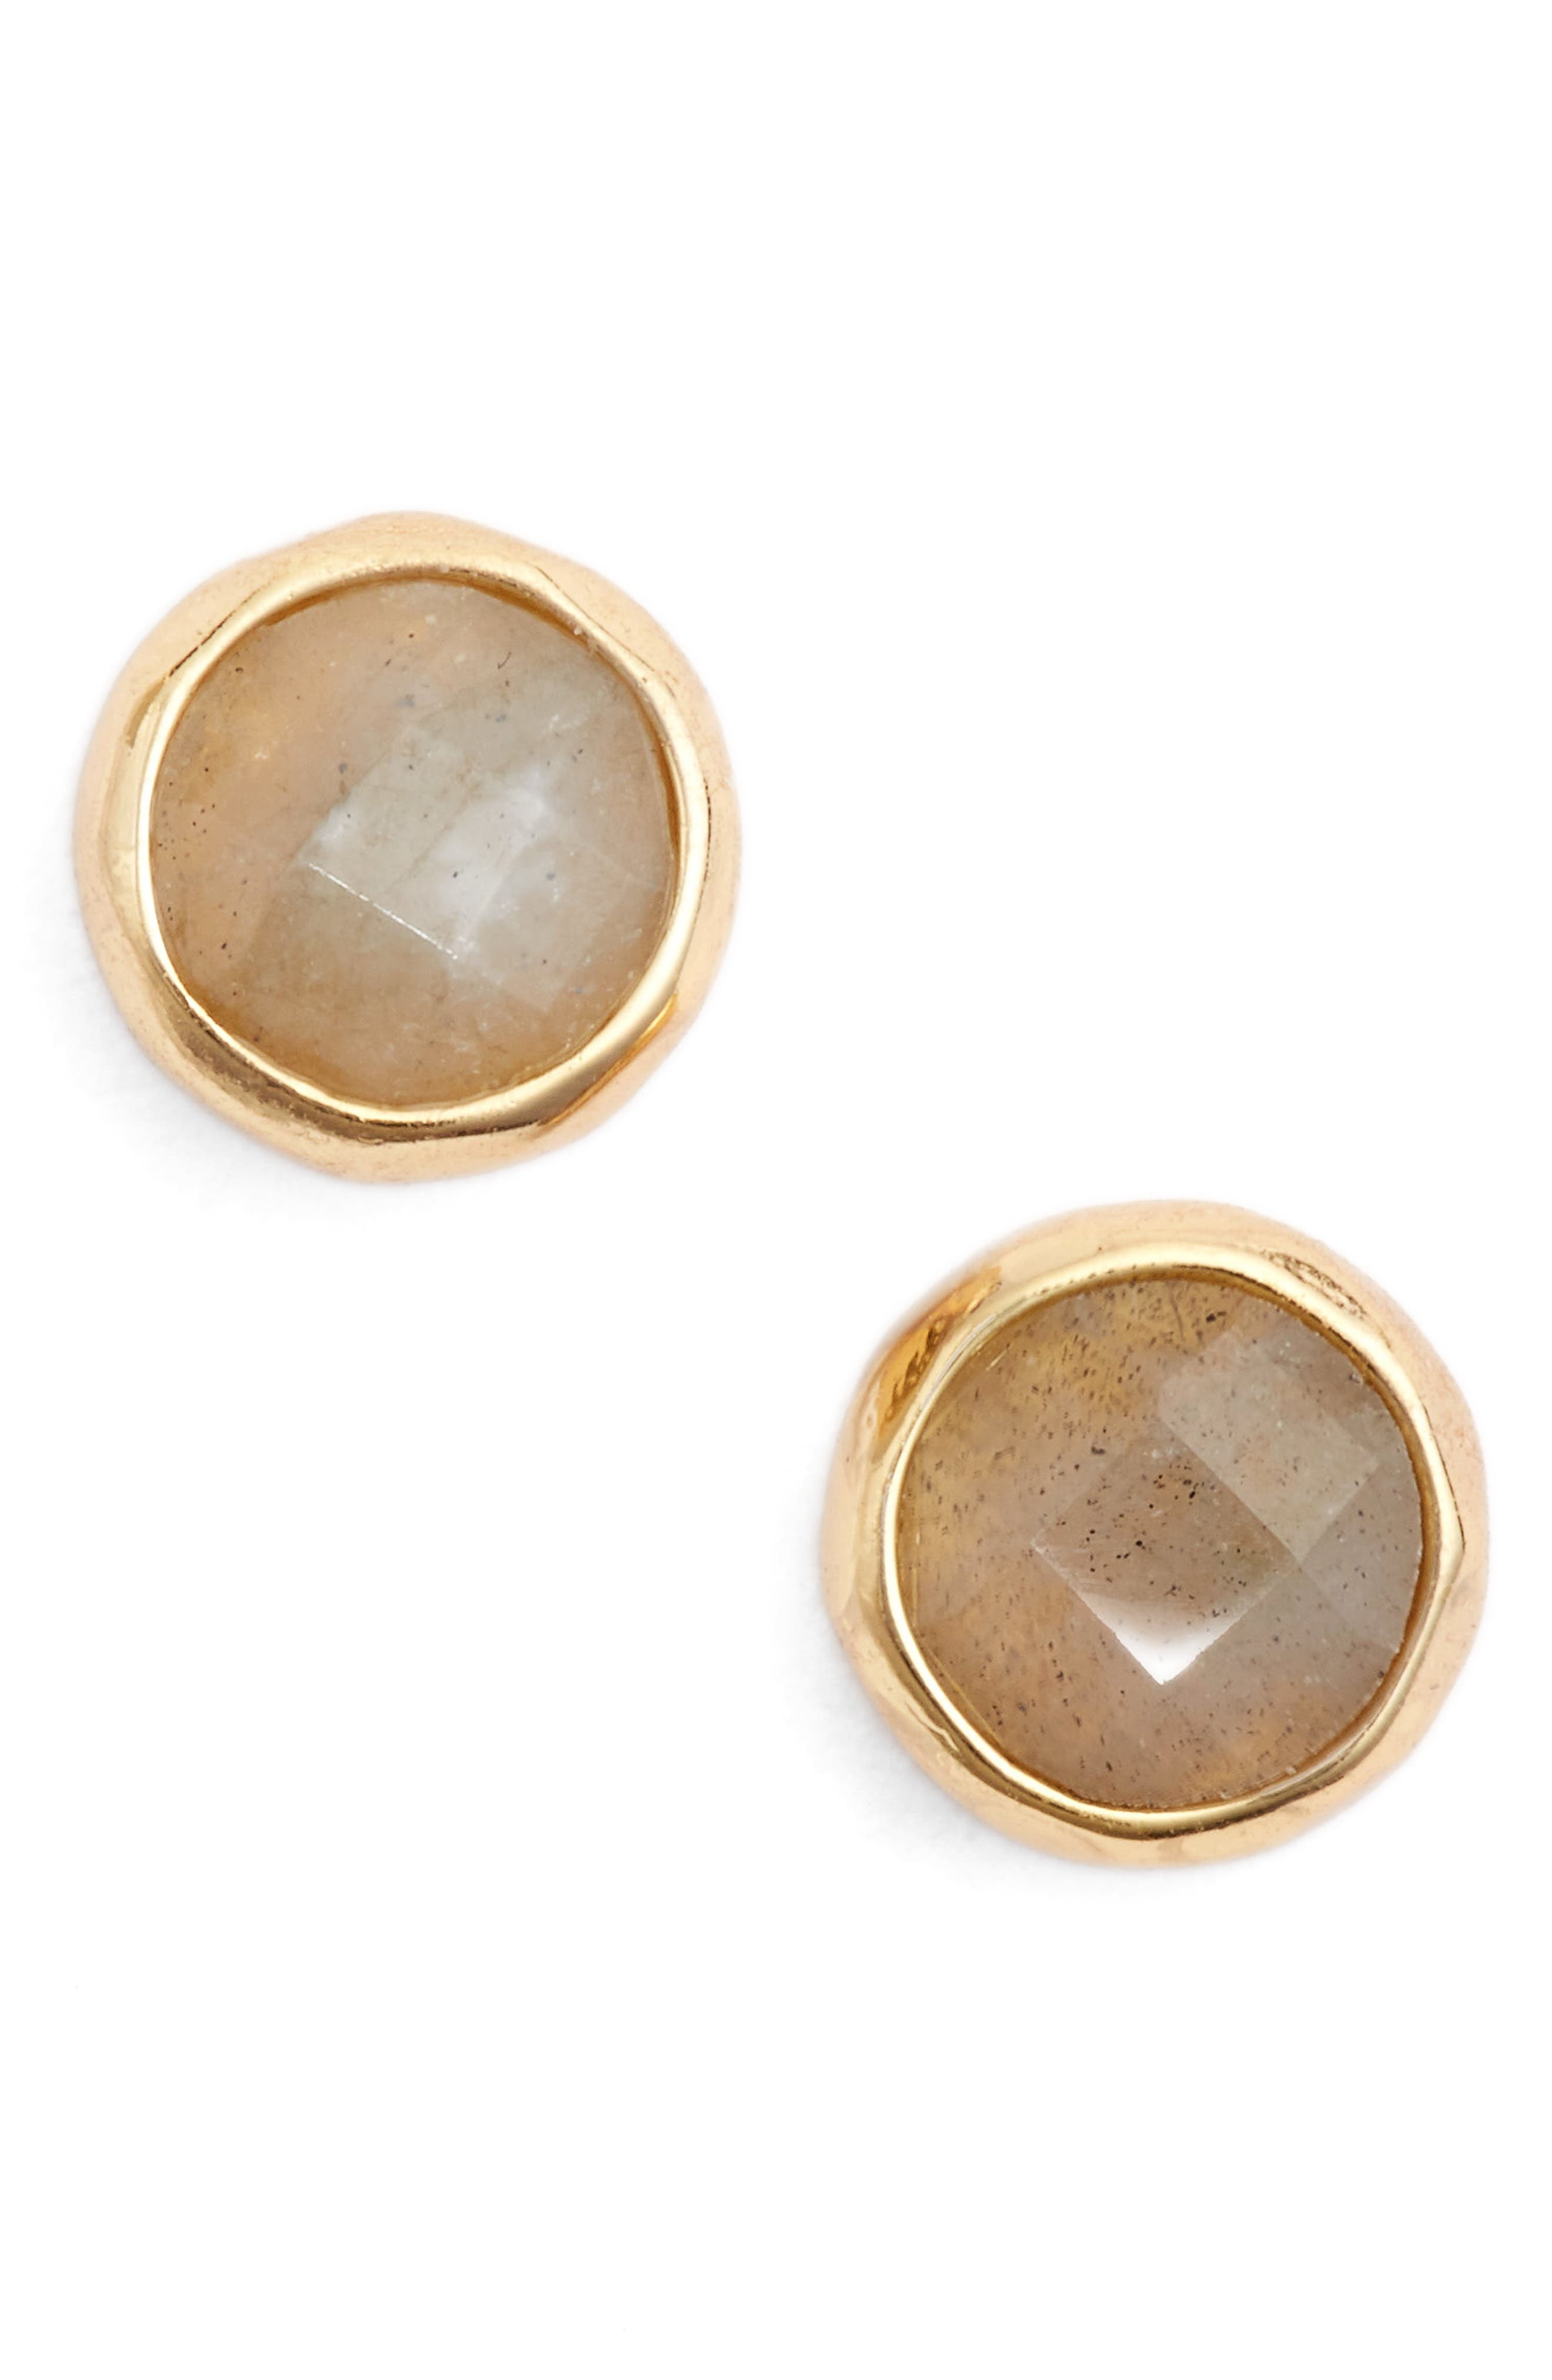 Balance Stud Earrings,                             Main thumbnail 1, color,                             Labradorite/ Gold